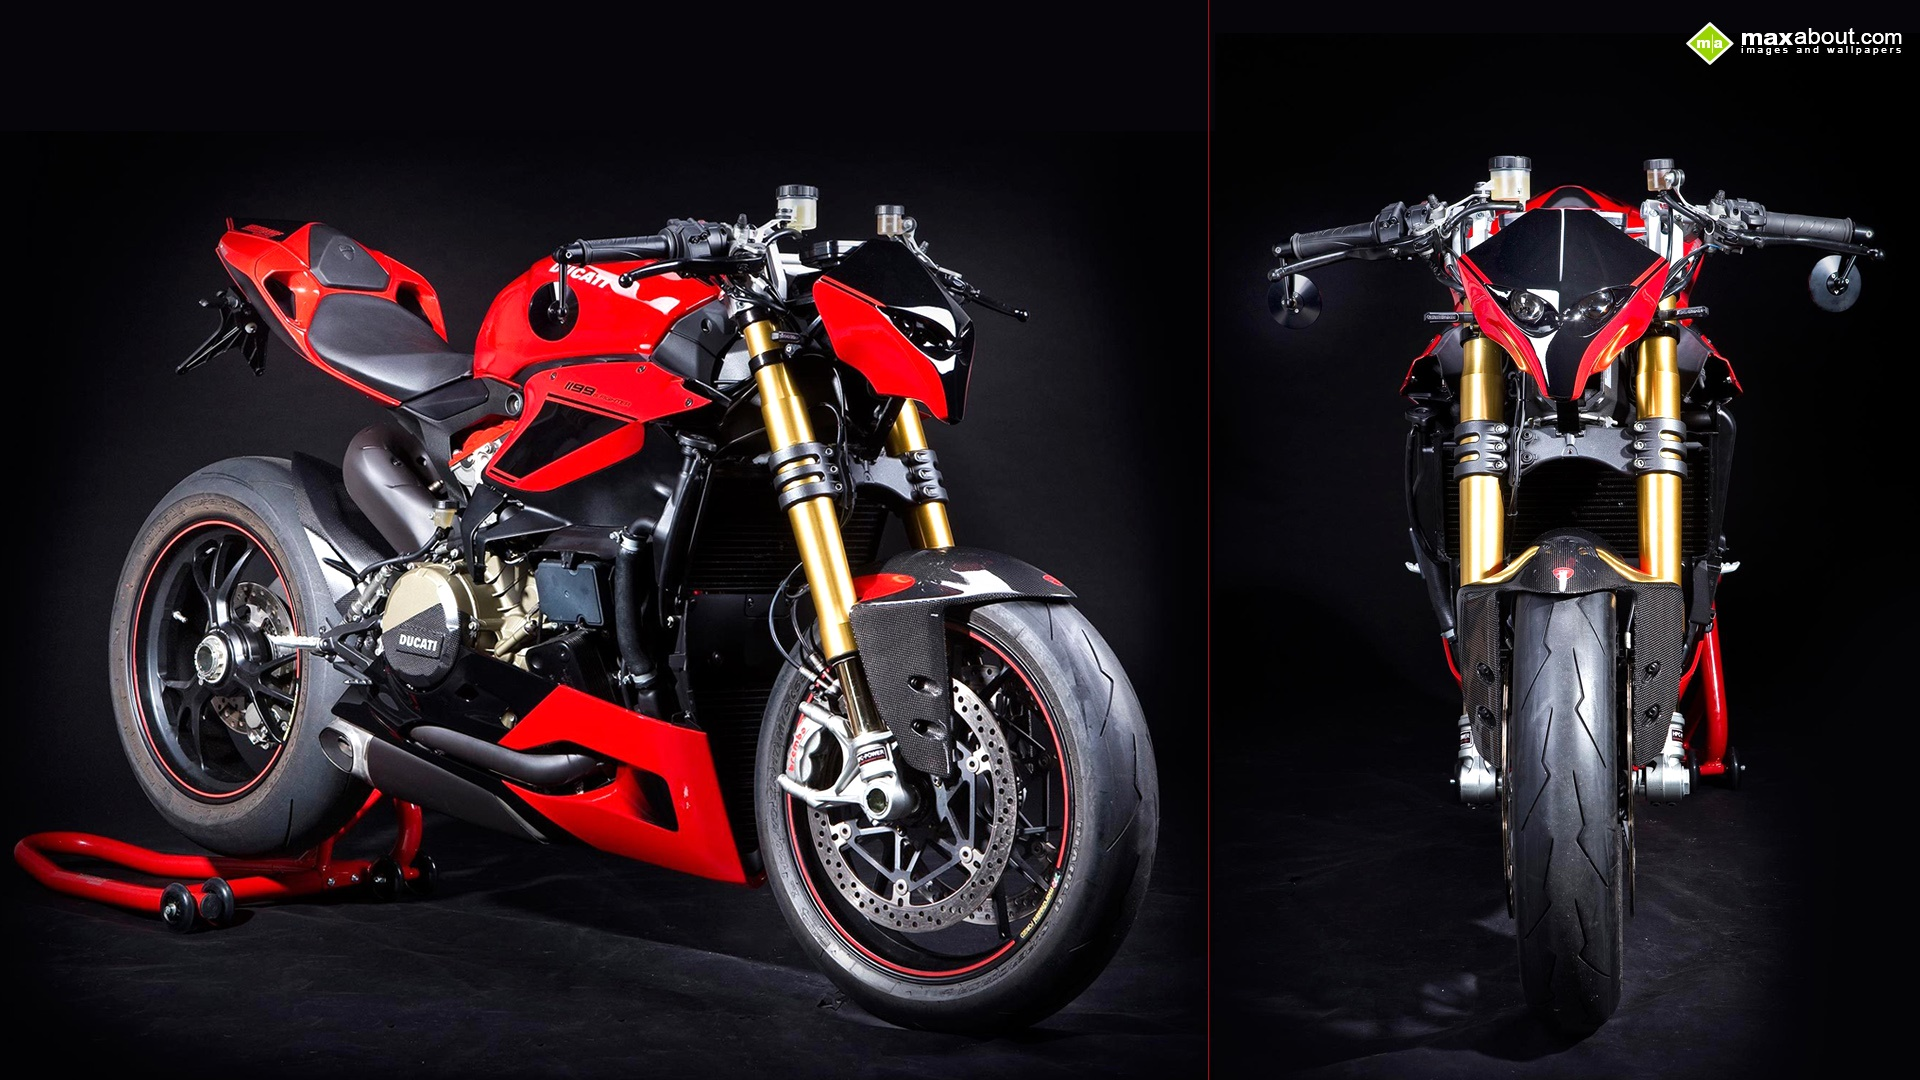 Ducati 1199 Panigale Streetfighter by Hertrampf 1920x1080